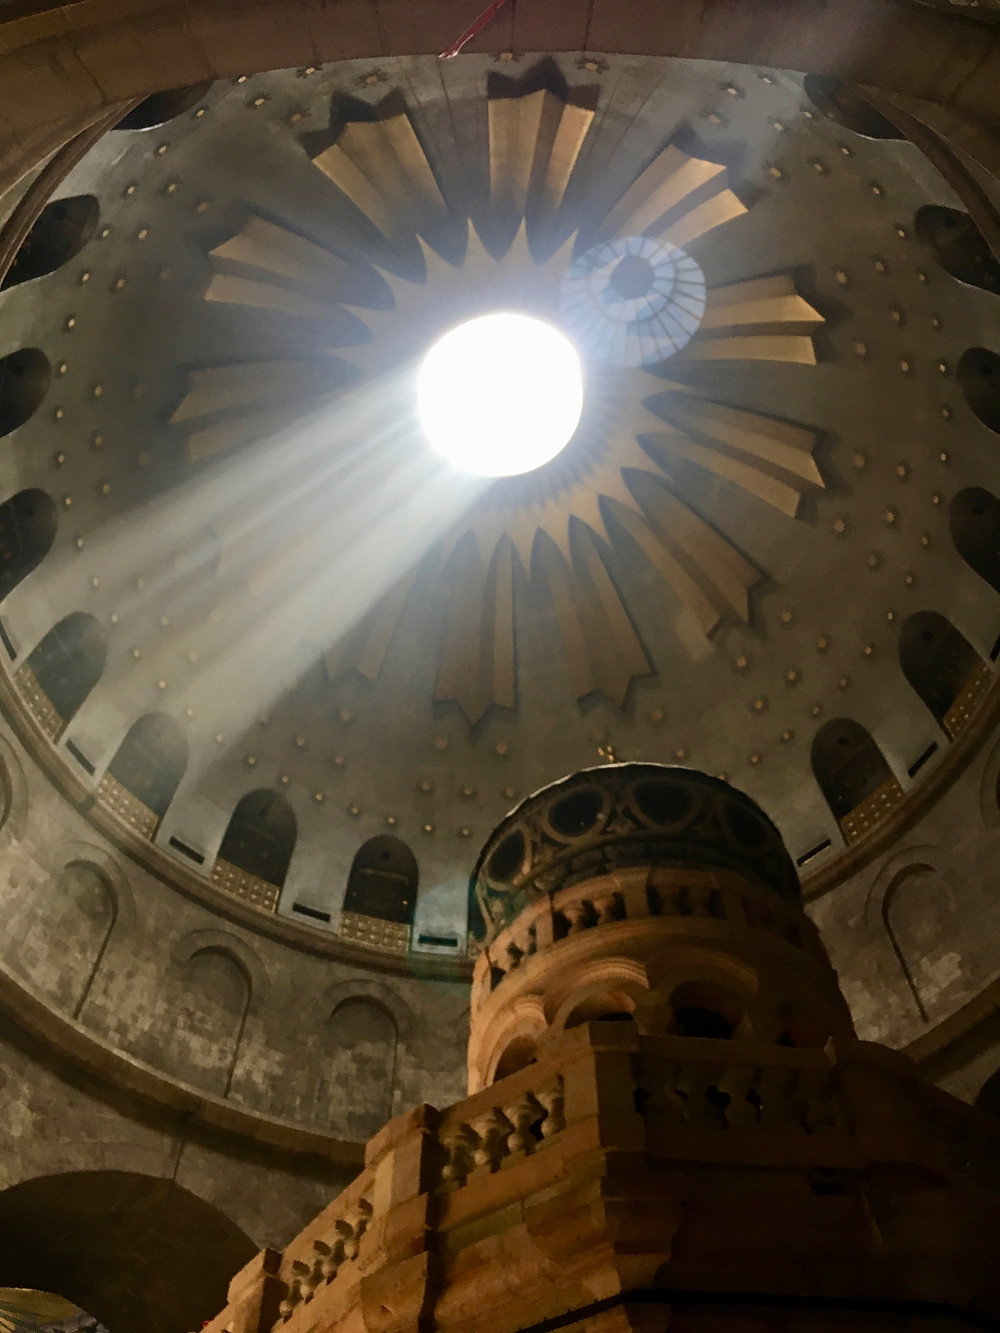 Inside the Church of the Holy Sepulchre's main dome above the Tomb of Jesus as light leaks in from the central oculus